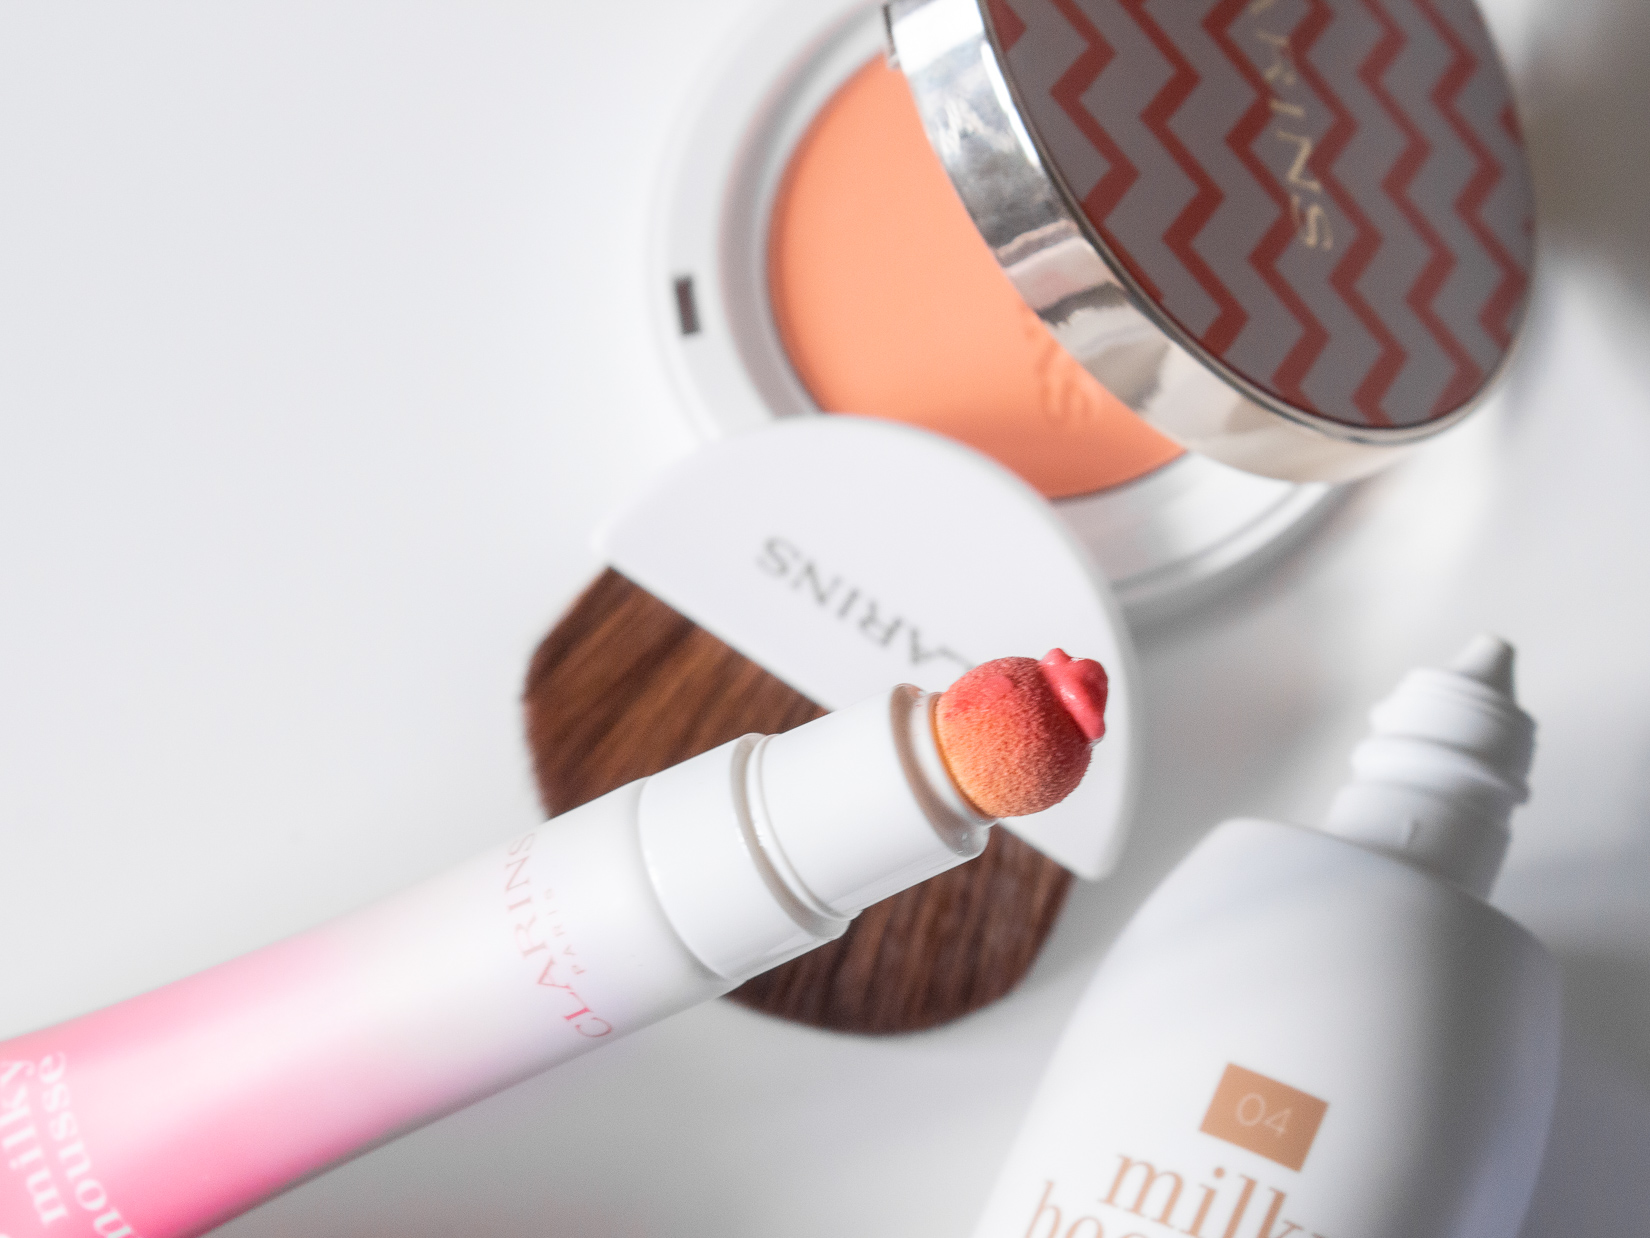 clarins lip milky mousse 03 milky pink blog